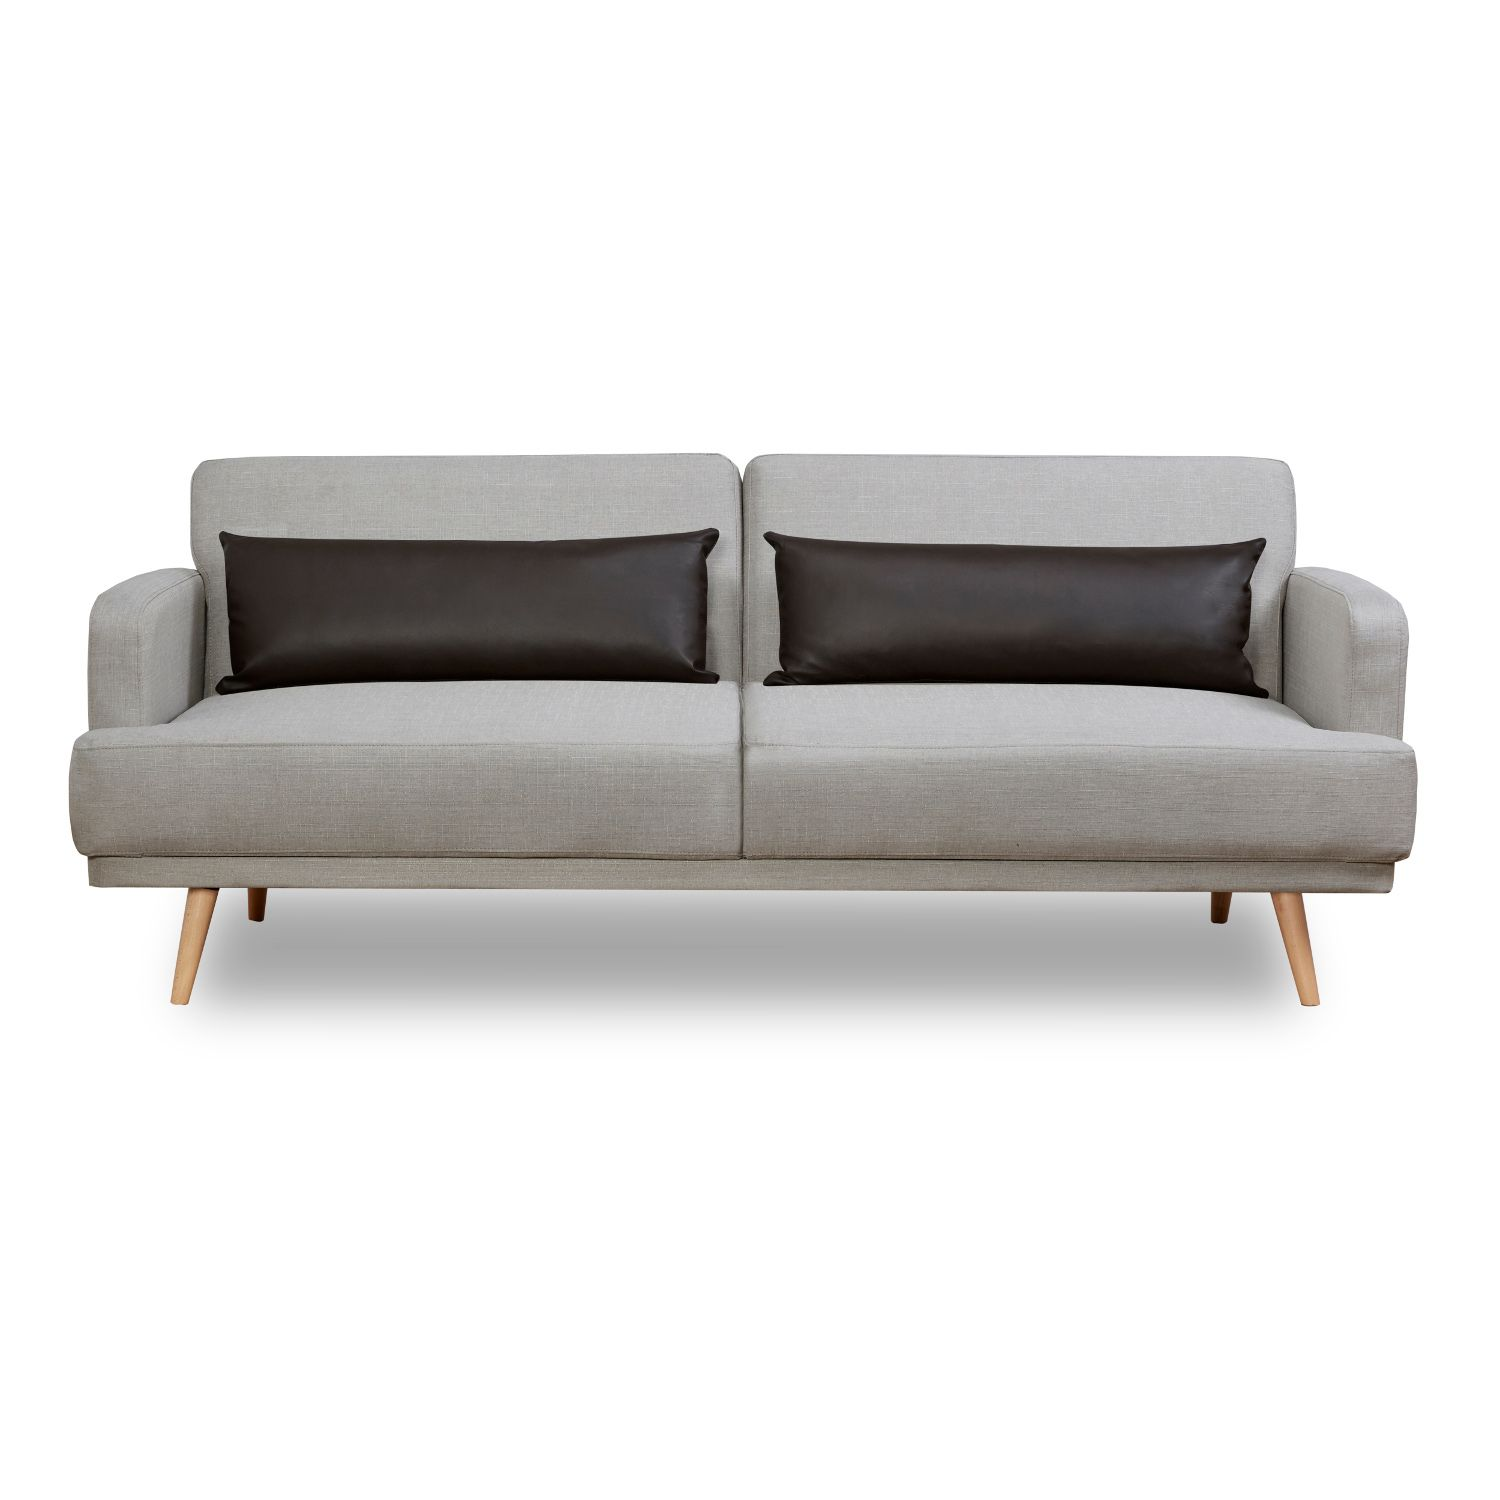 Dante 3 Seater Fabric Sofa Bed Next Day Delivery